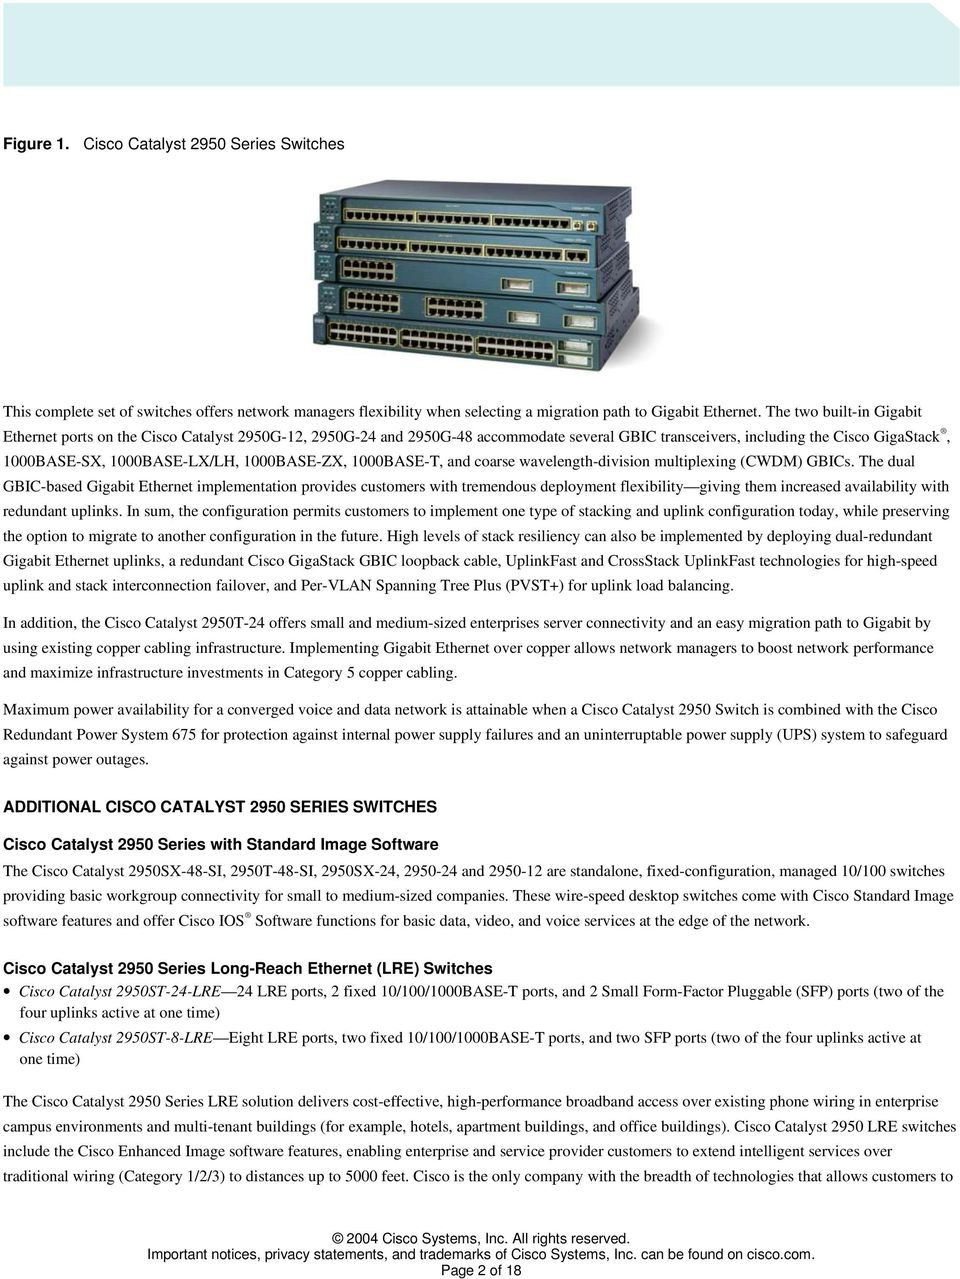 Cisco Catalyst 2950 Series Switches With Enhanced Image Software Pdf Voice Data Combination Module Ethernet Switch 1000base Zx T And Coarse Wavelength Division Multiplexing Cwdm